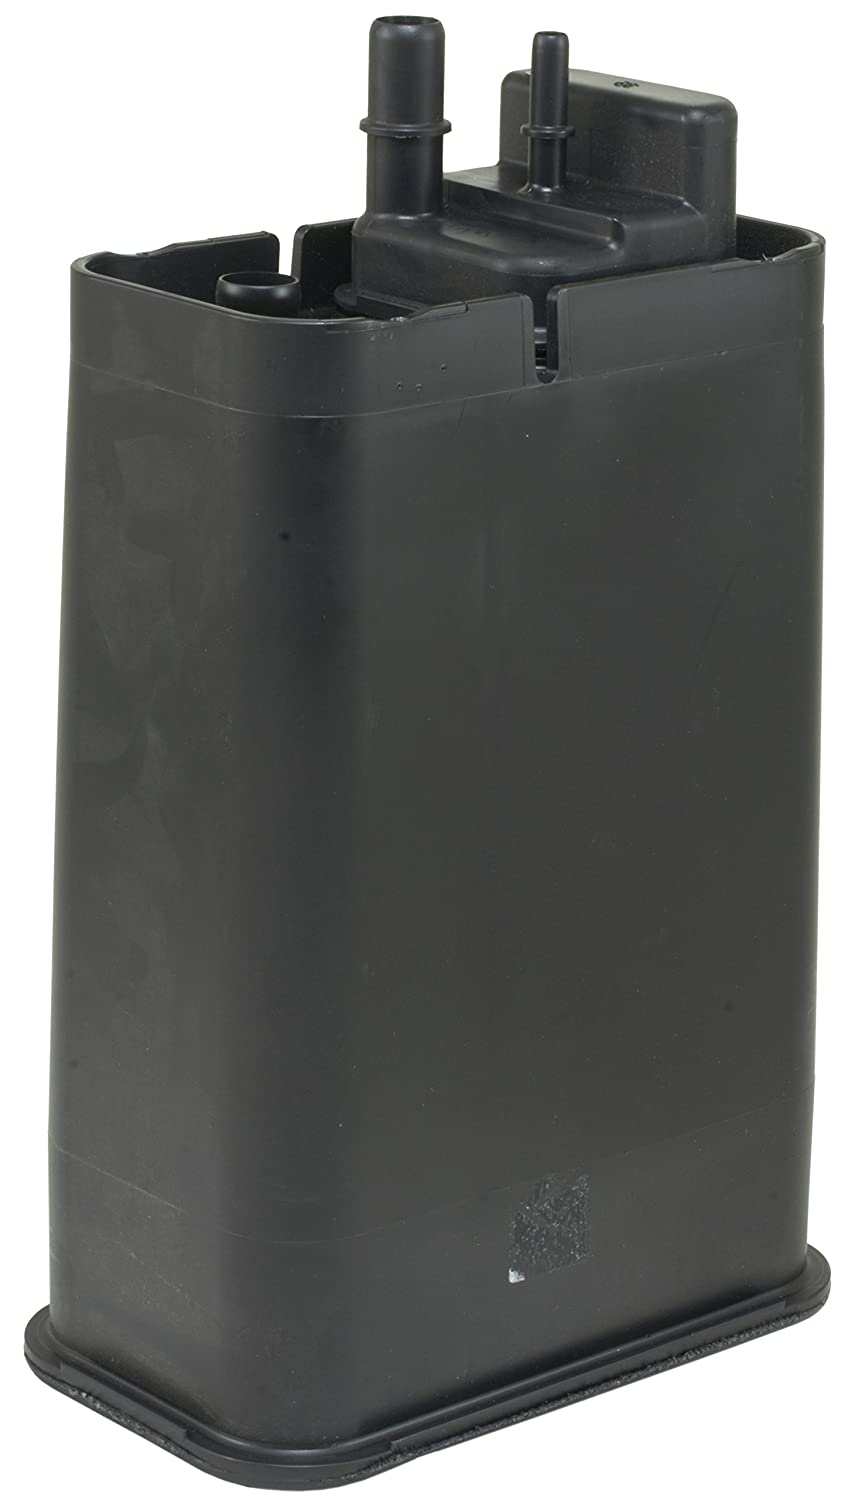 Wells VC126 Vapor Canister